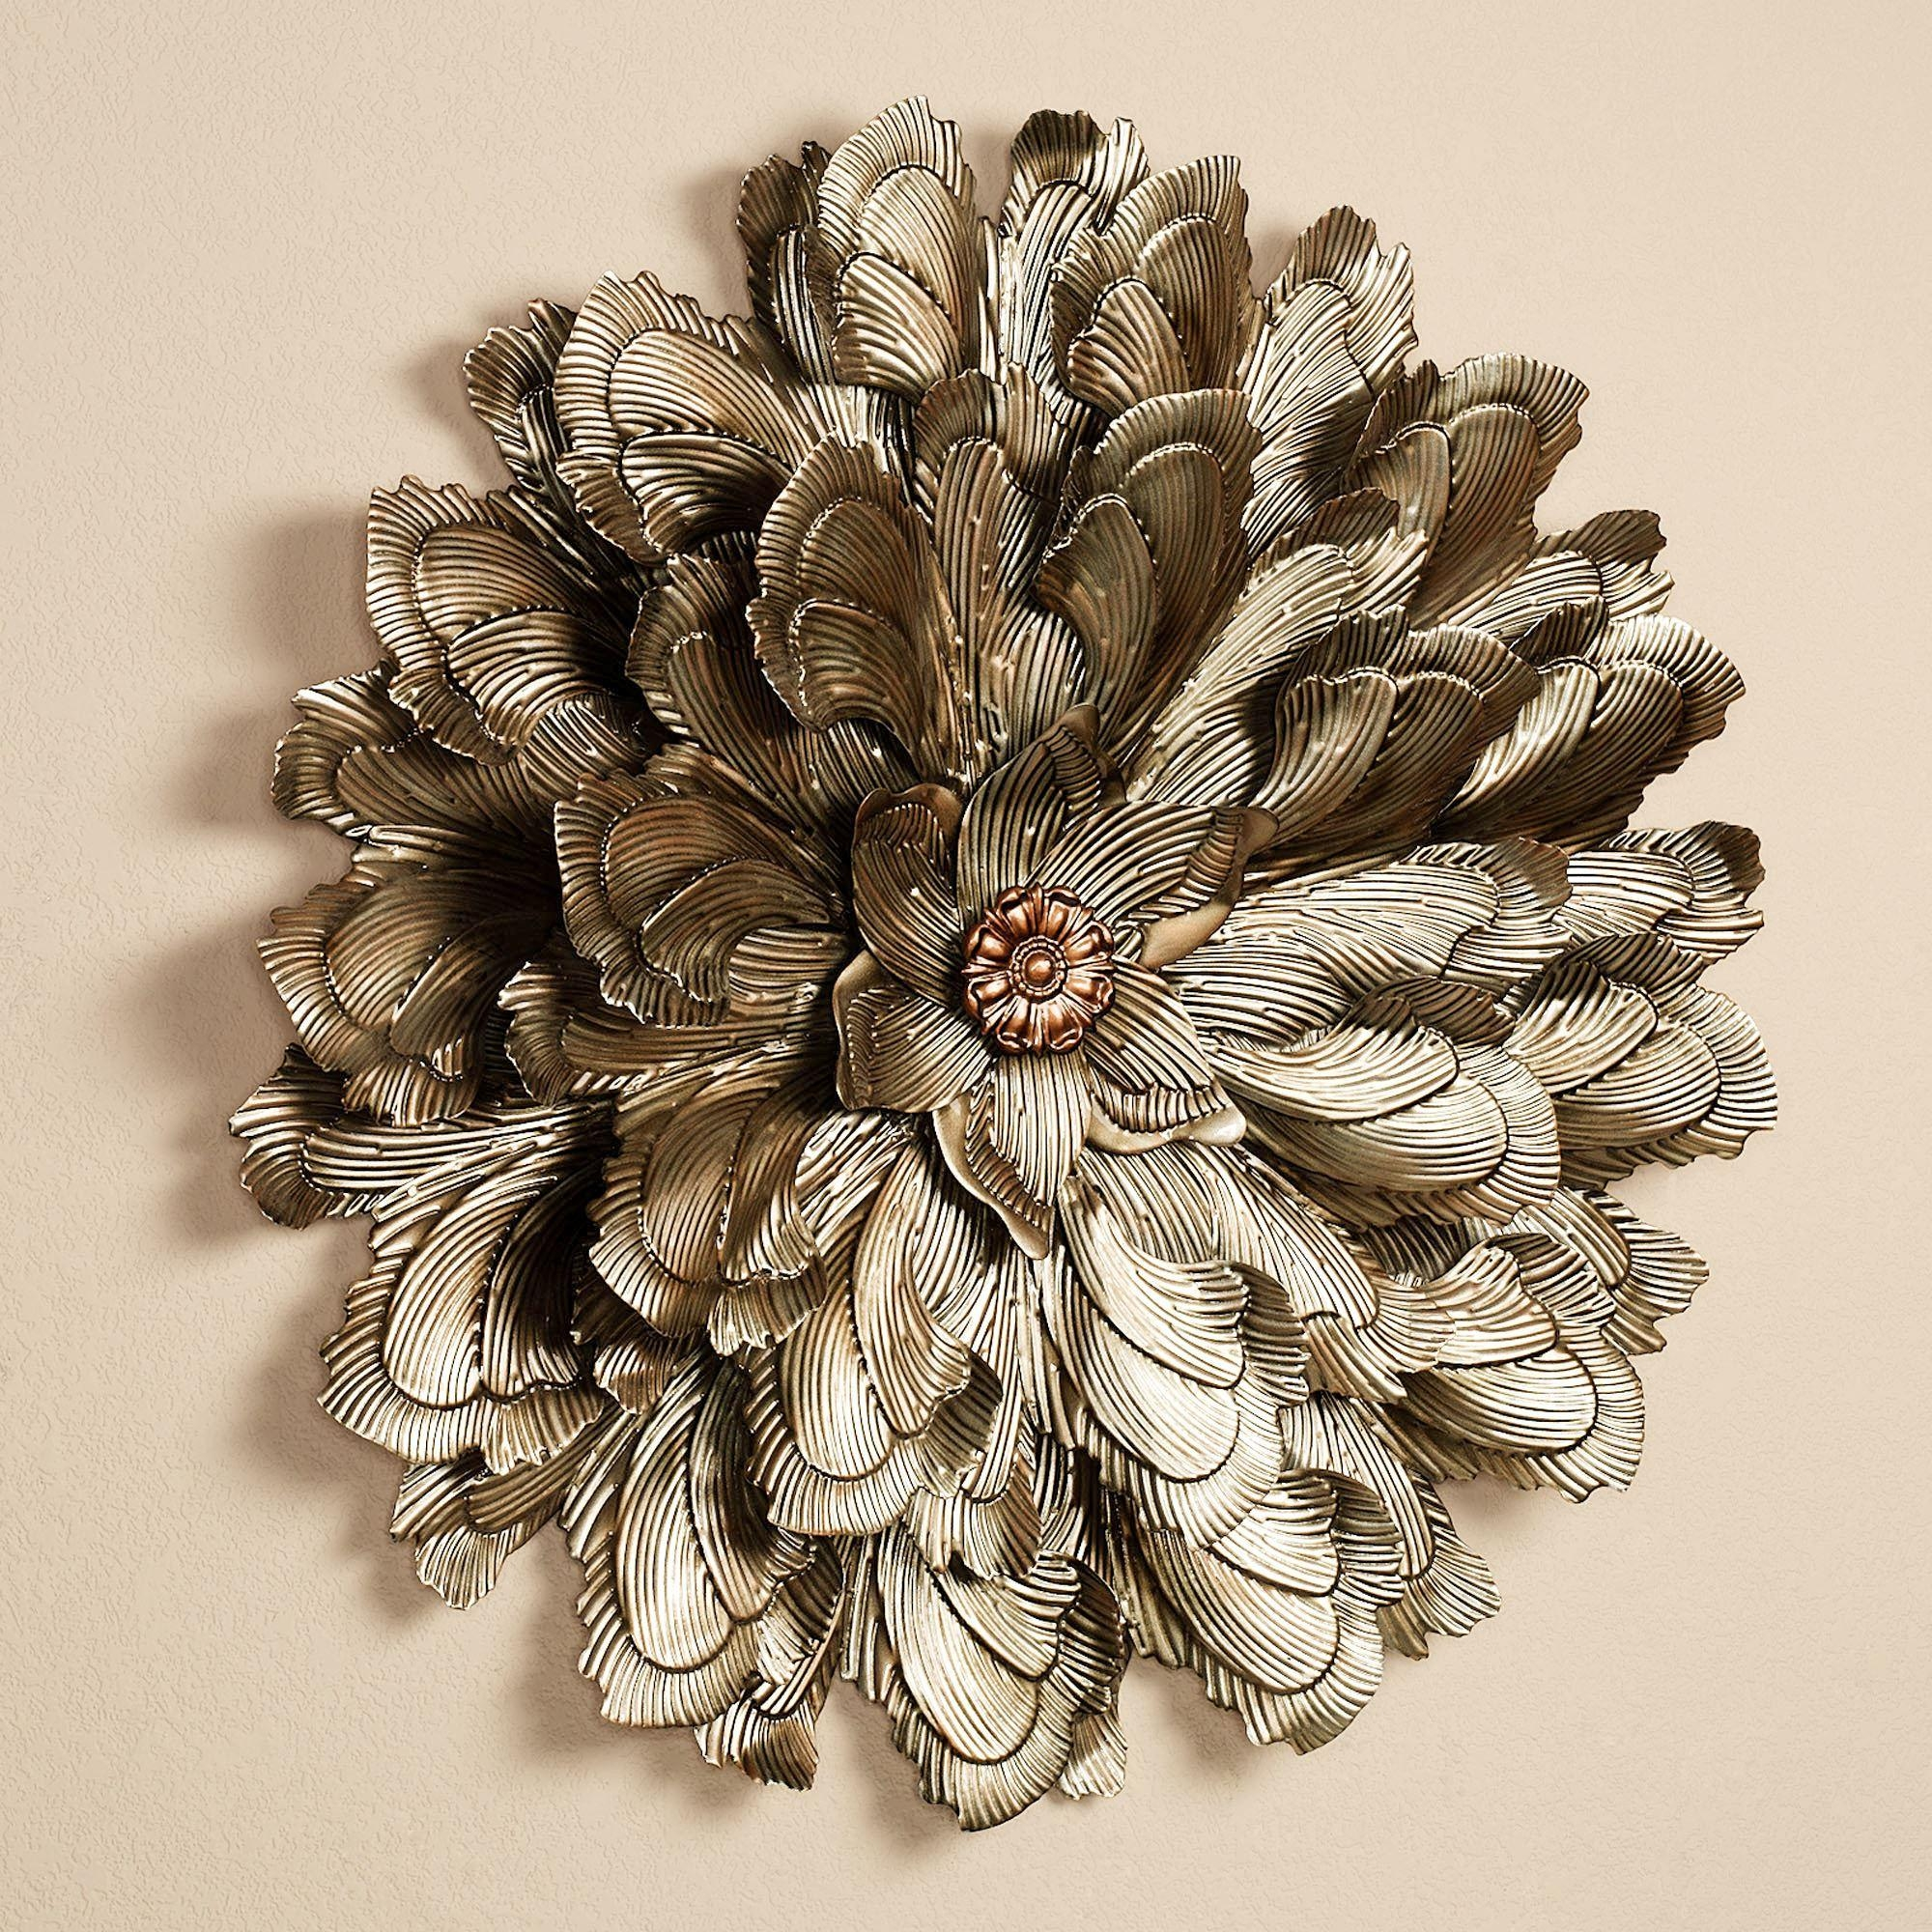 Delicate Flower Blossom Metal Wall Sculpture Intended For Touch Of Class Metal Wall Art (Image 6 of 20)